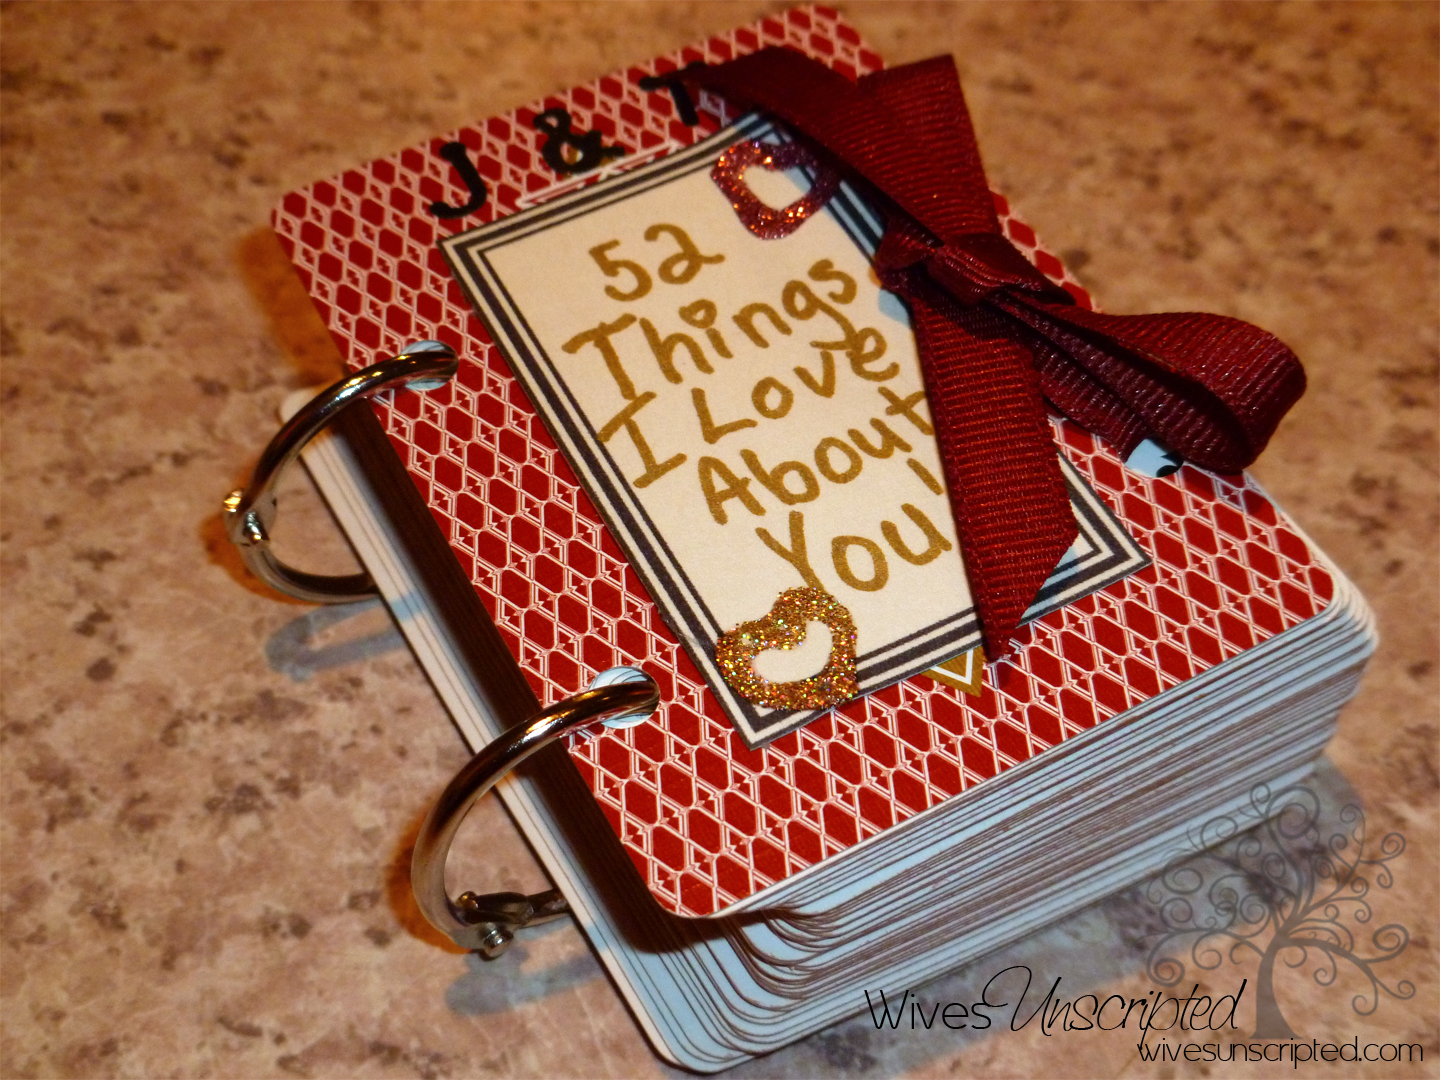 I Love You Crafts 52 Things I Love About You Craft Wivesunscripted